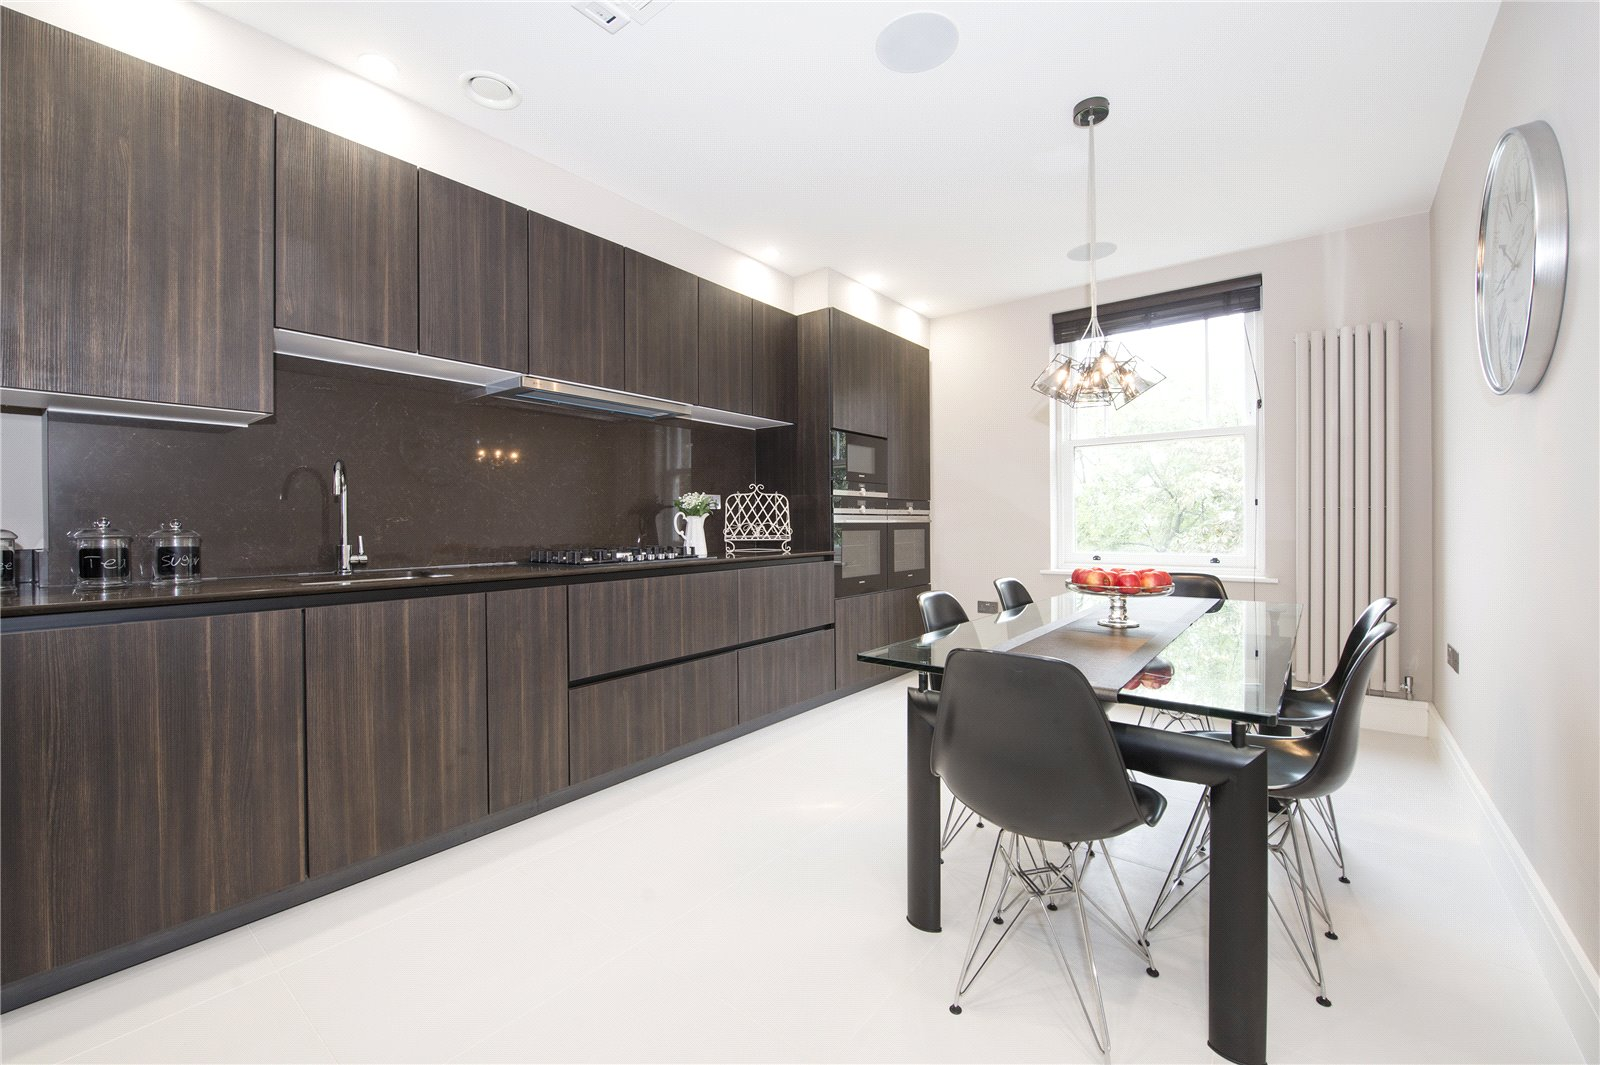 Apartment for Rent at Fitzjohn's Avenue, Hampstead, London, NW3 Fitzjohn's Avenue, Hampstead, London, NW3